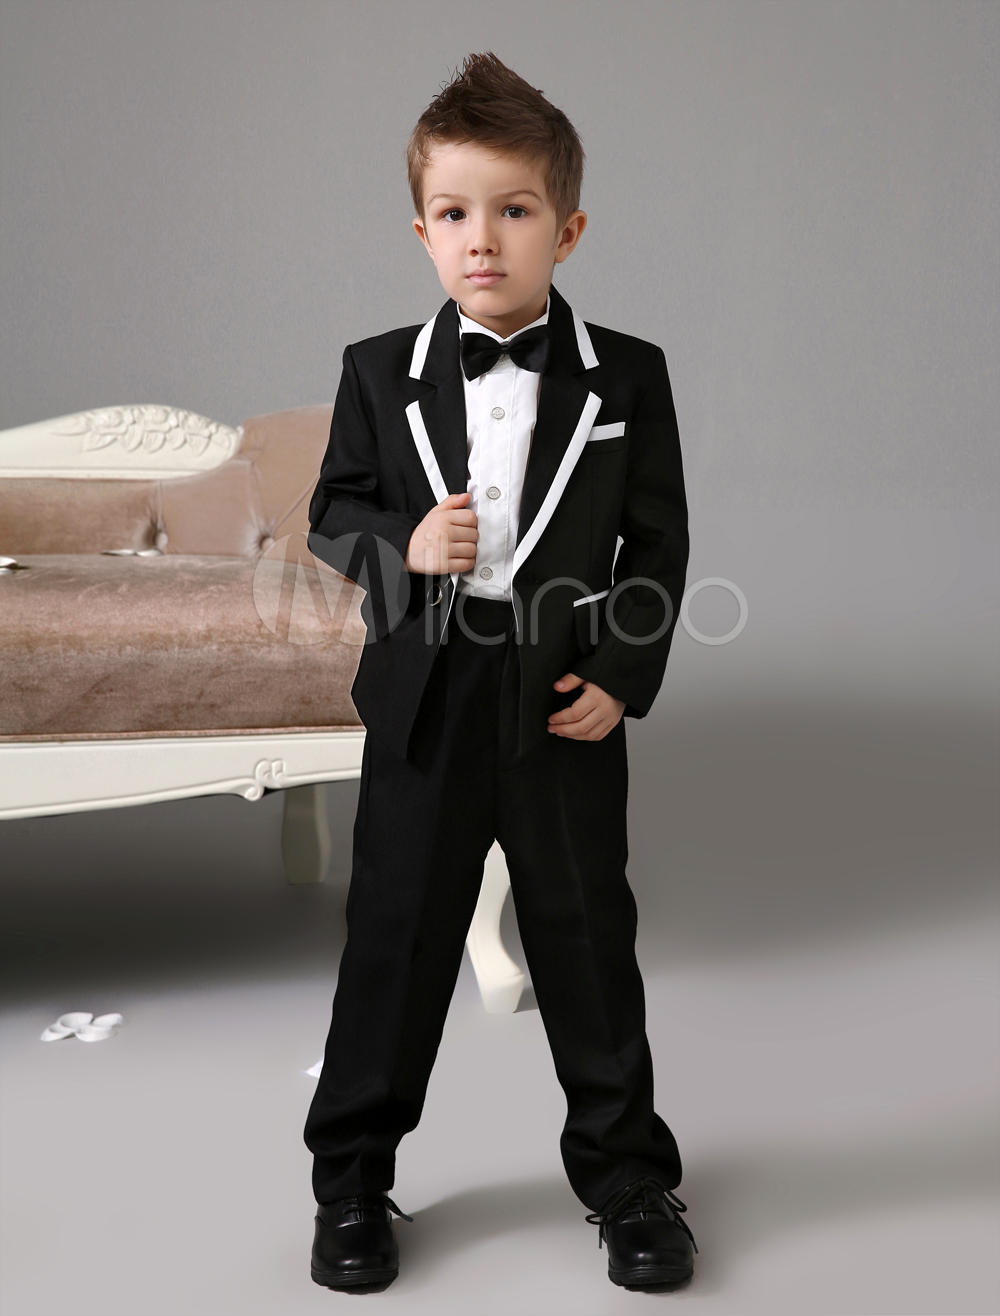 0c9396d8e546 Black Boy Suit Set Kids Tuxedo Wedding Jacket Pants Shirts Bow Tie ...